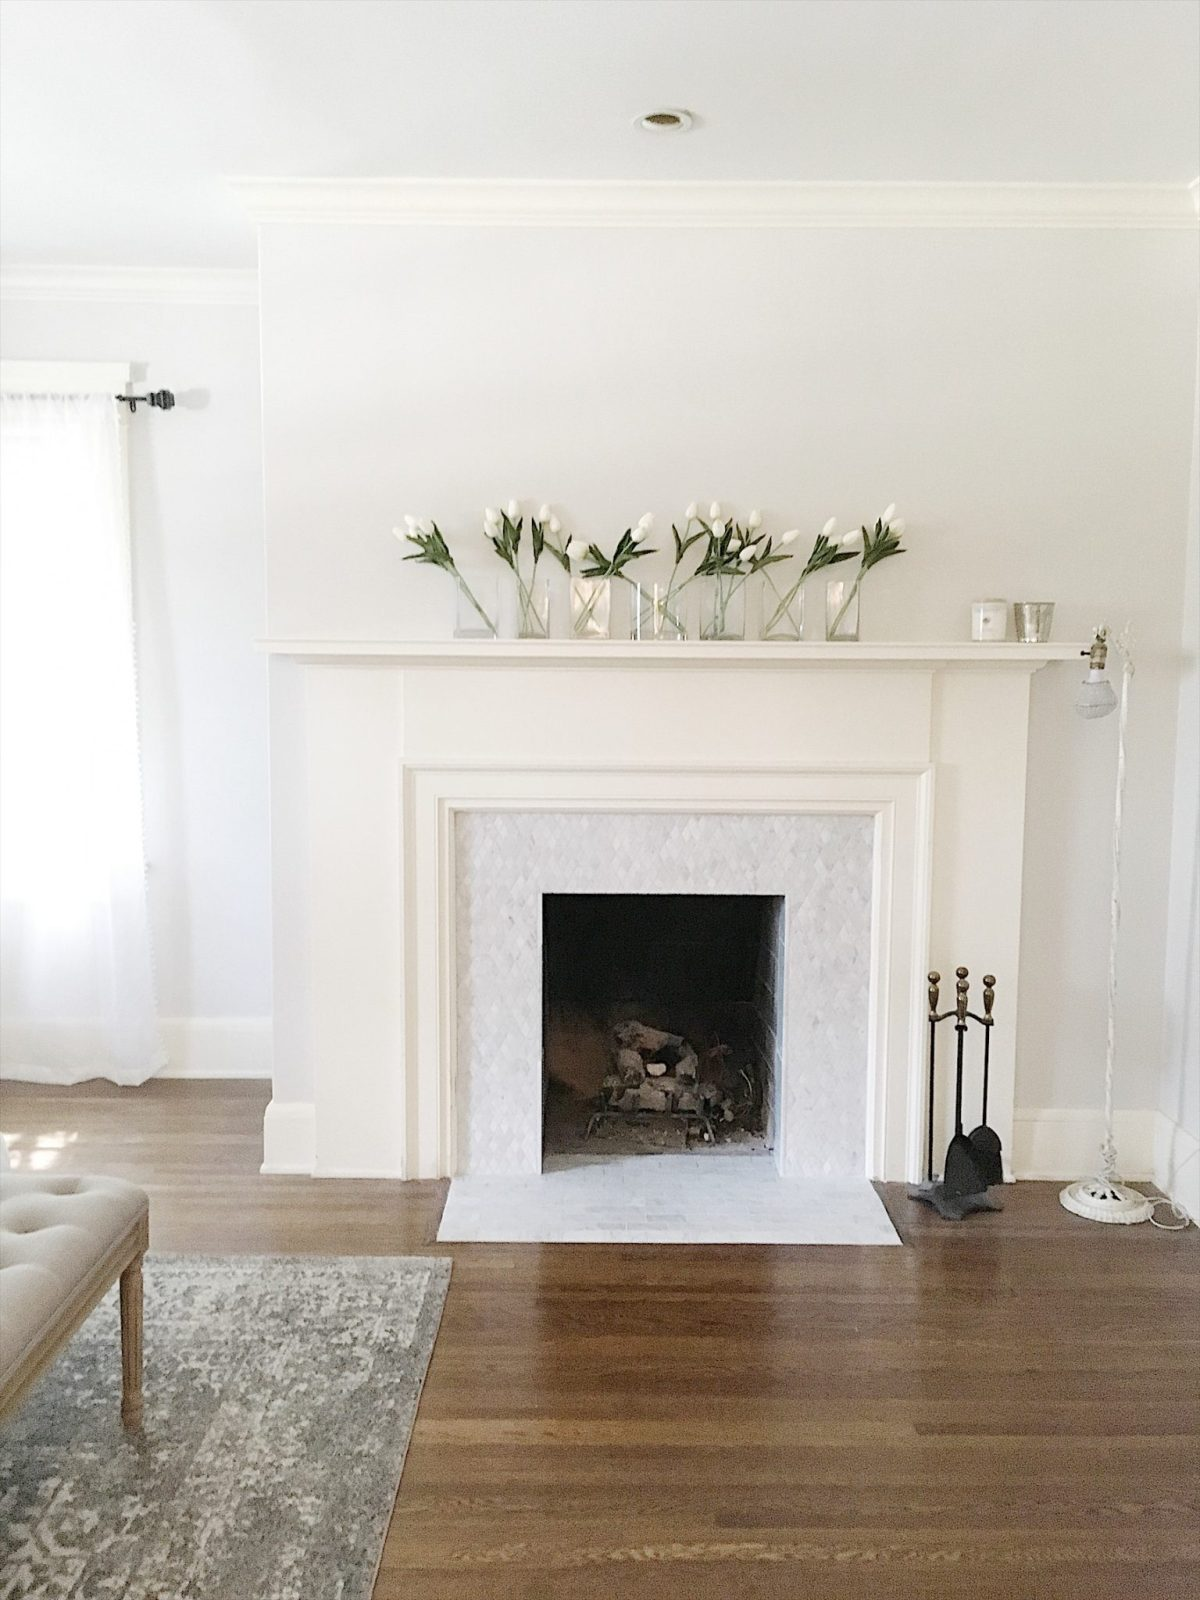 designing stylish fireplaces blog design a wright bedroom frank lloyd fireplace with master